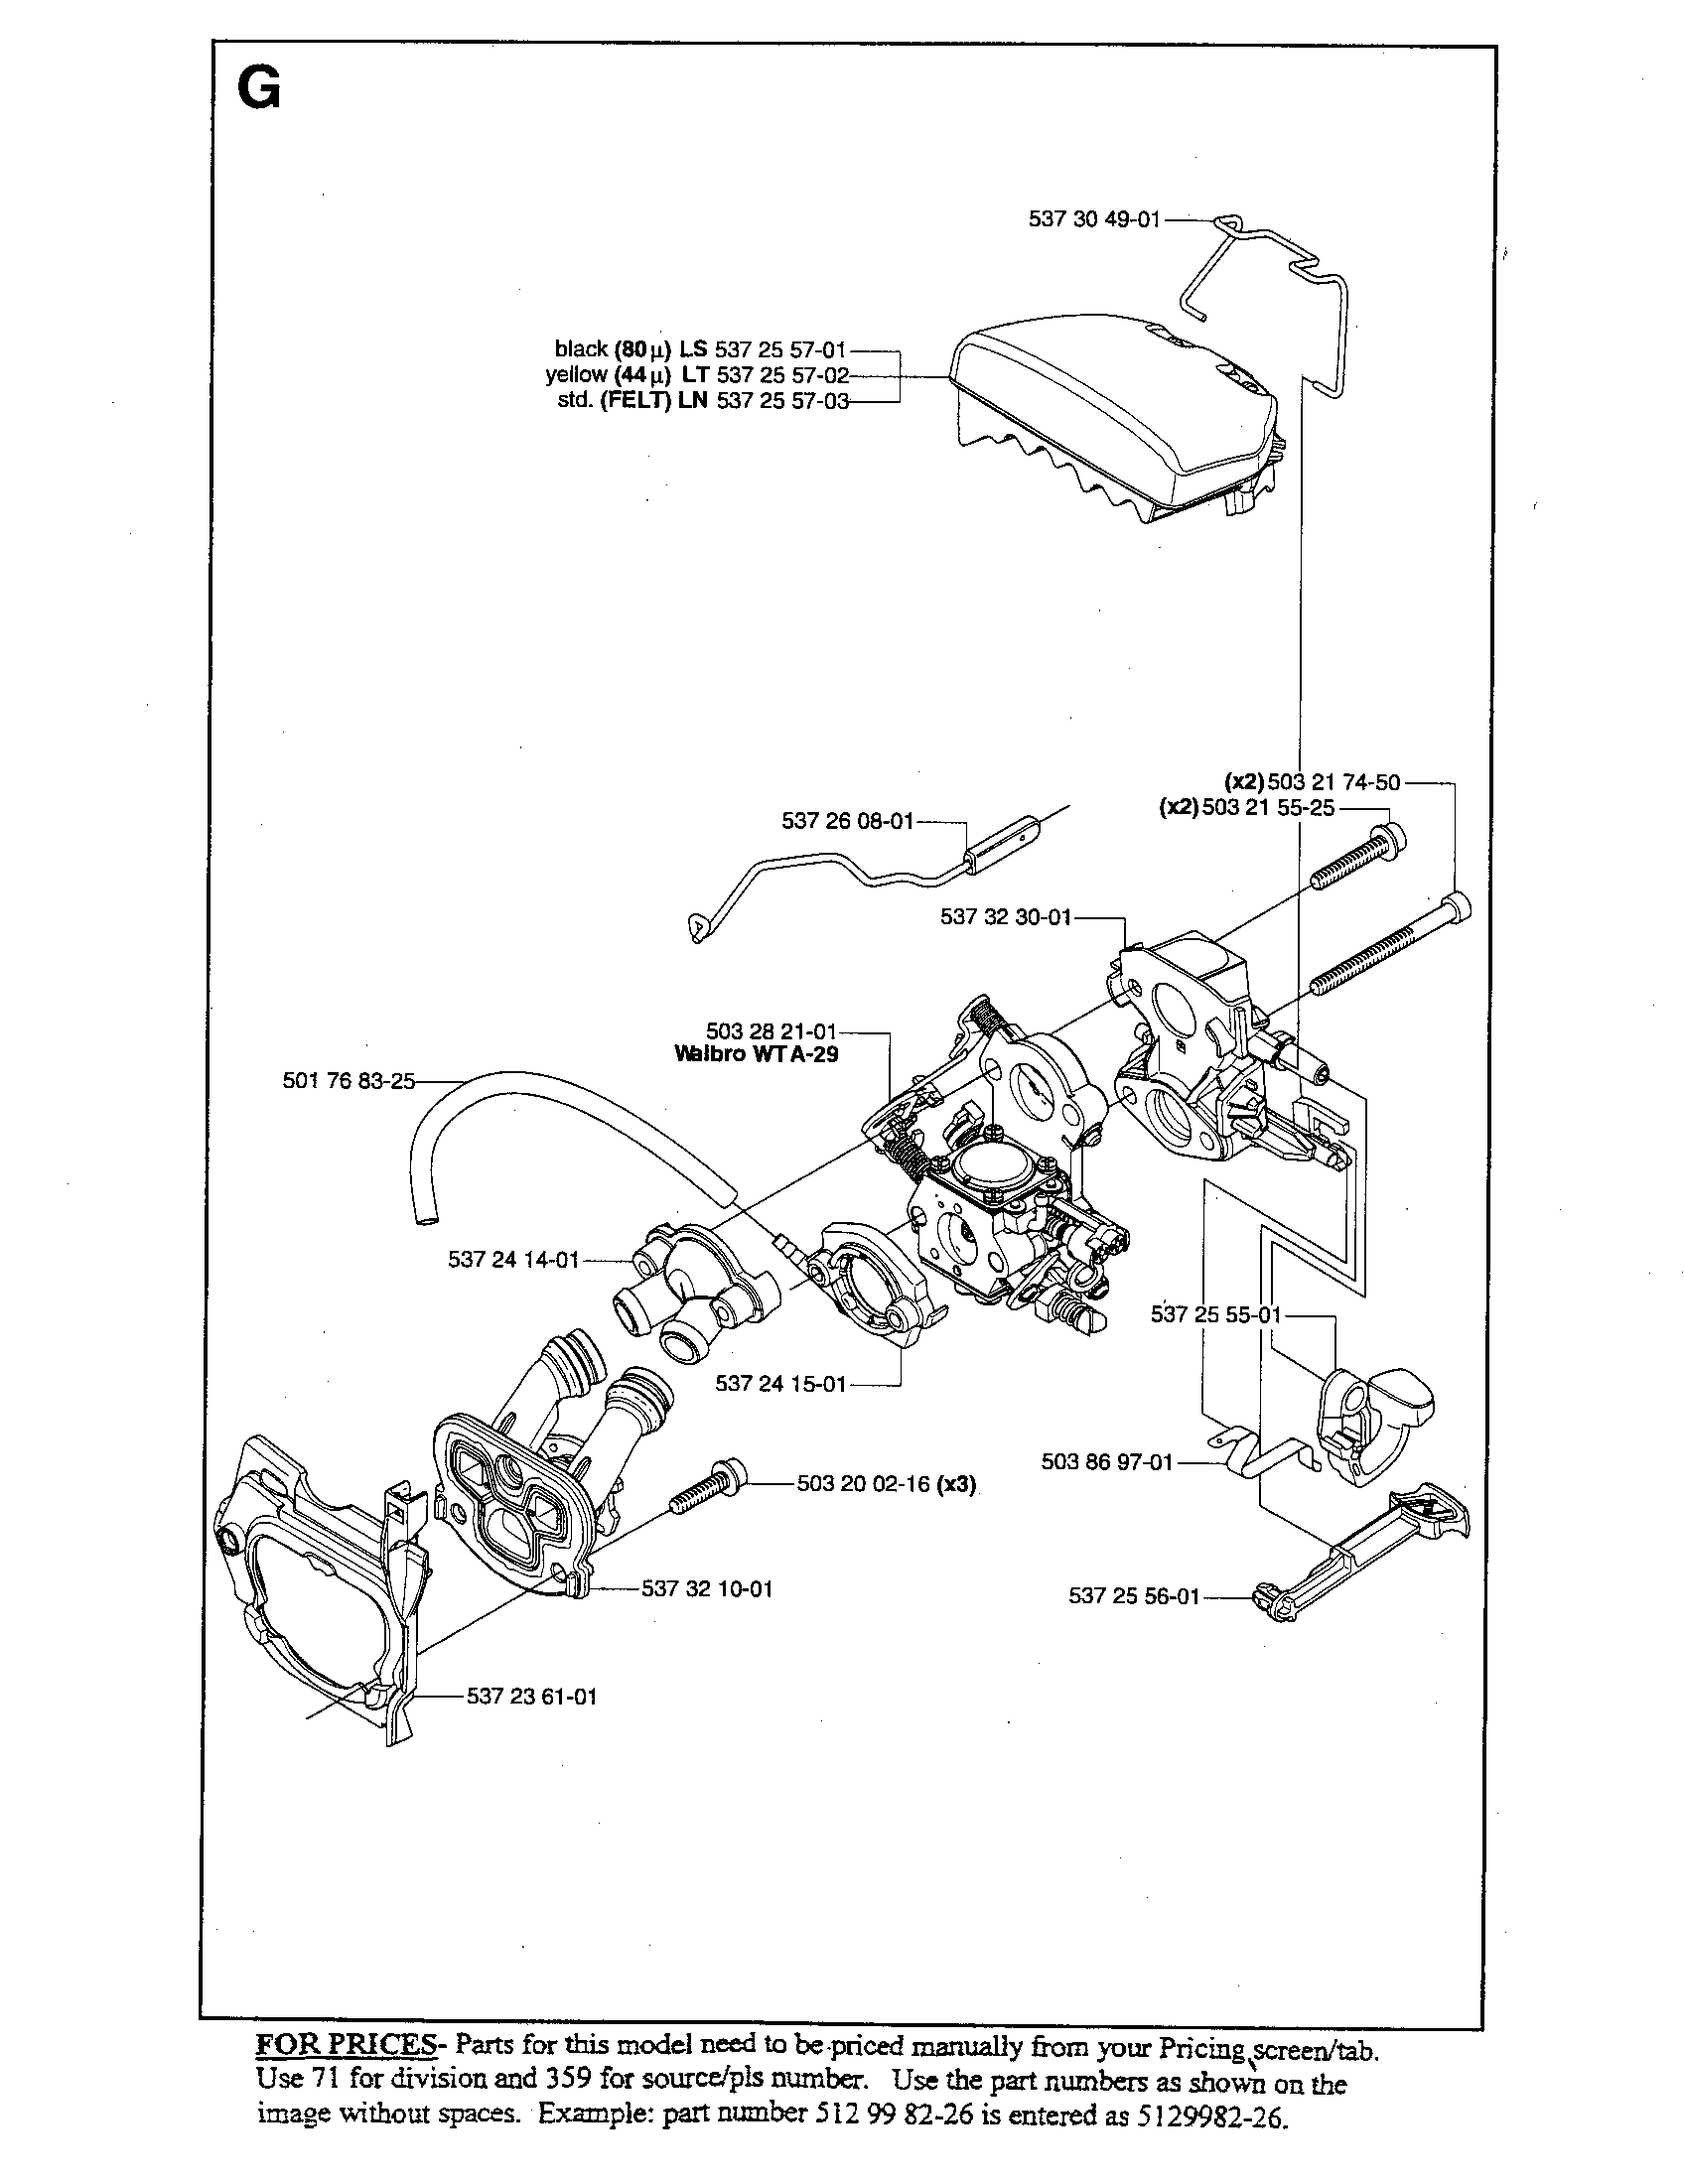 husqvarna 455 rancher parts diagram 2002 mitsubishi eclipse gs wiring 301 moved permanently